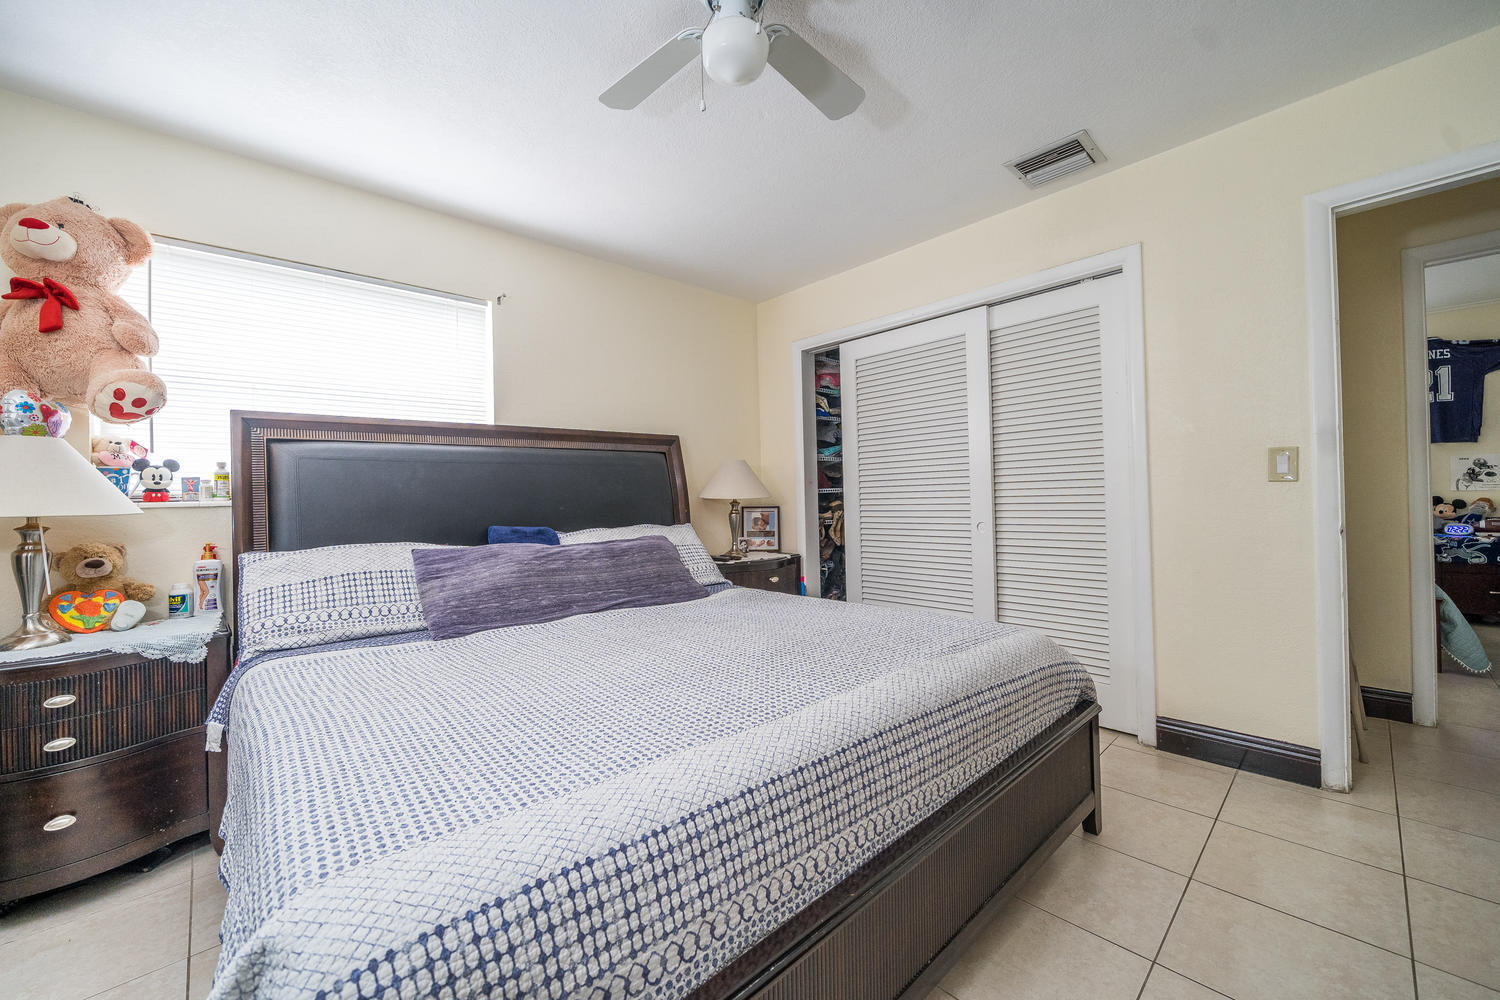 913 Montego Drive West Palm Beach, FL 33415 small photo 18